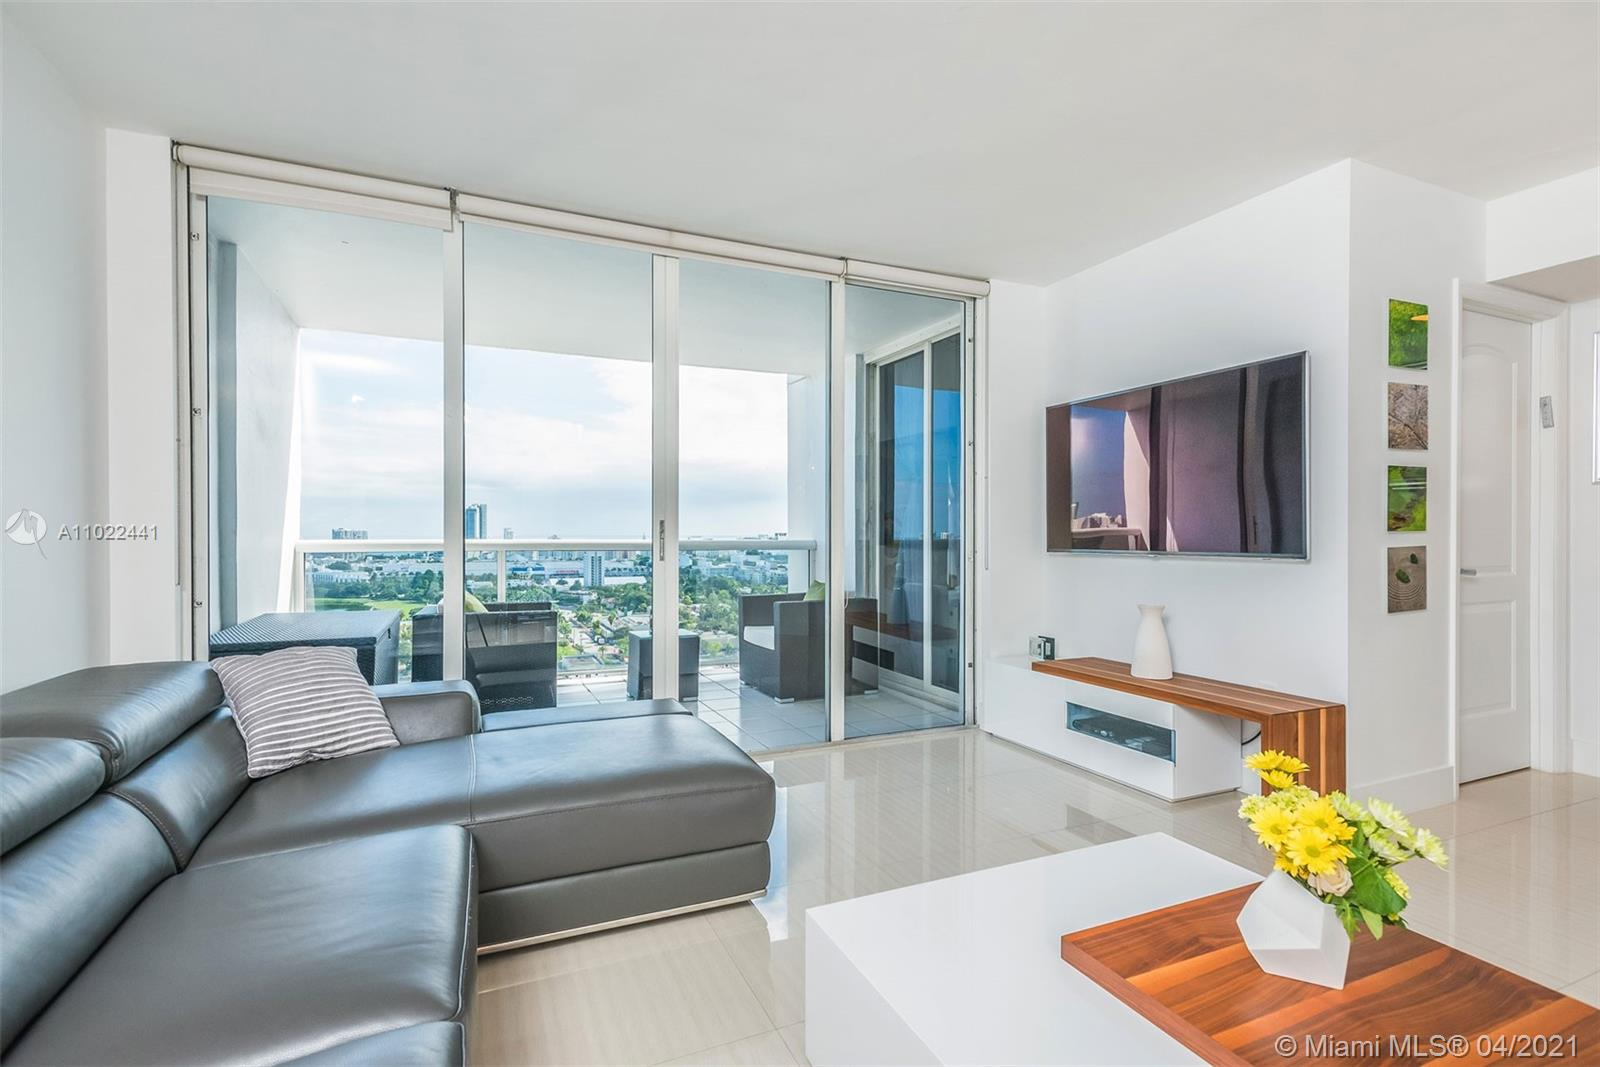 Relax and unwind in this spacious 2-bedroom condo with expansive views of the city beyond, and the beautiful Biscayne Bay. With plenty of living space and an open concept throughout the kitchen and living areas, this condo is a wonderful space for entertaining. The balcony is spread-out enough for hosting and impressing guests with its charming metropolitan views. Located in Sunset Harbour, a resident could not ask for a better location for their home. Restaurants, cafes, and entertainment are only a short walk away, and all that South Beach has to offer is easily within reach.